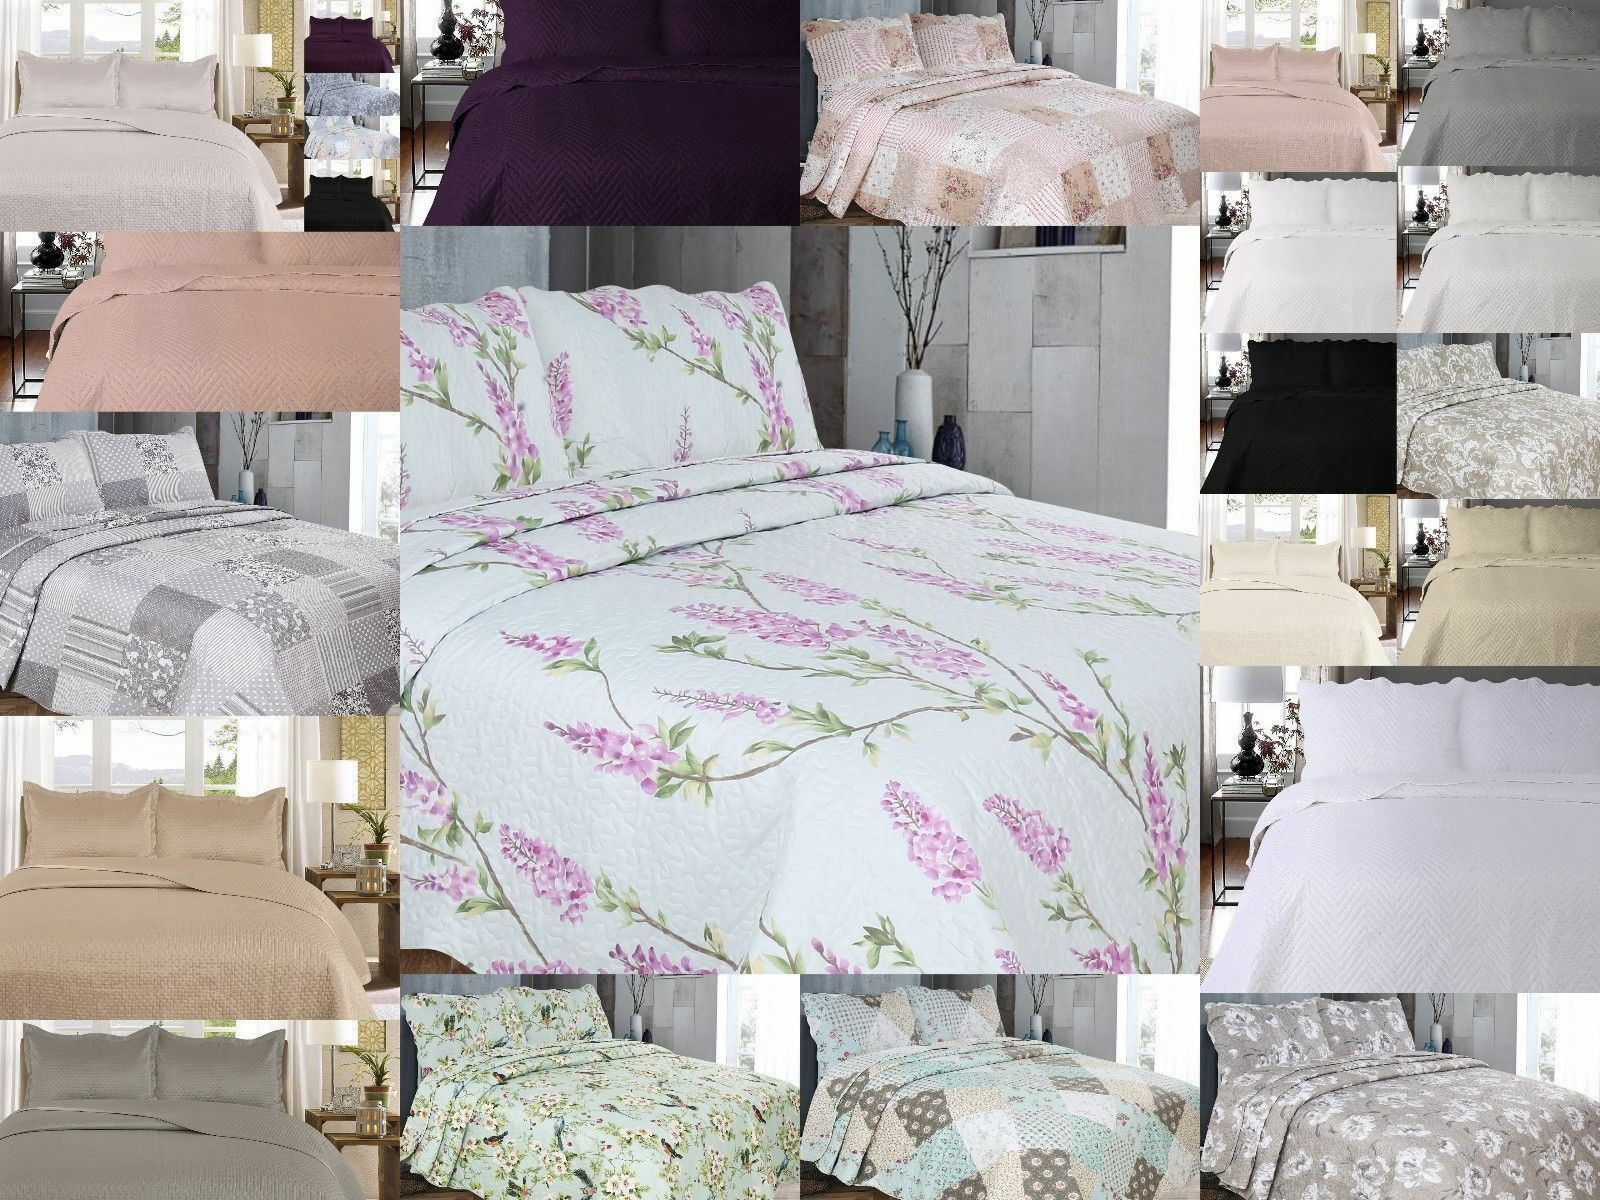 Multi Designs Luxury Bed Spreads Bed Throws With Pair of Mathcing Pillowcases